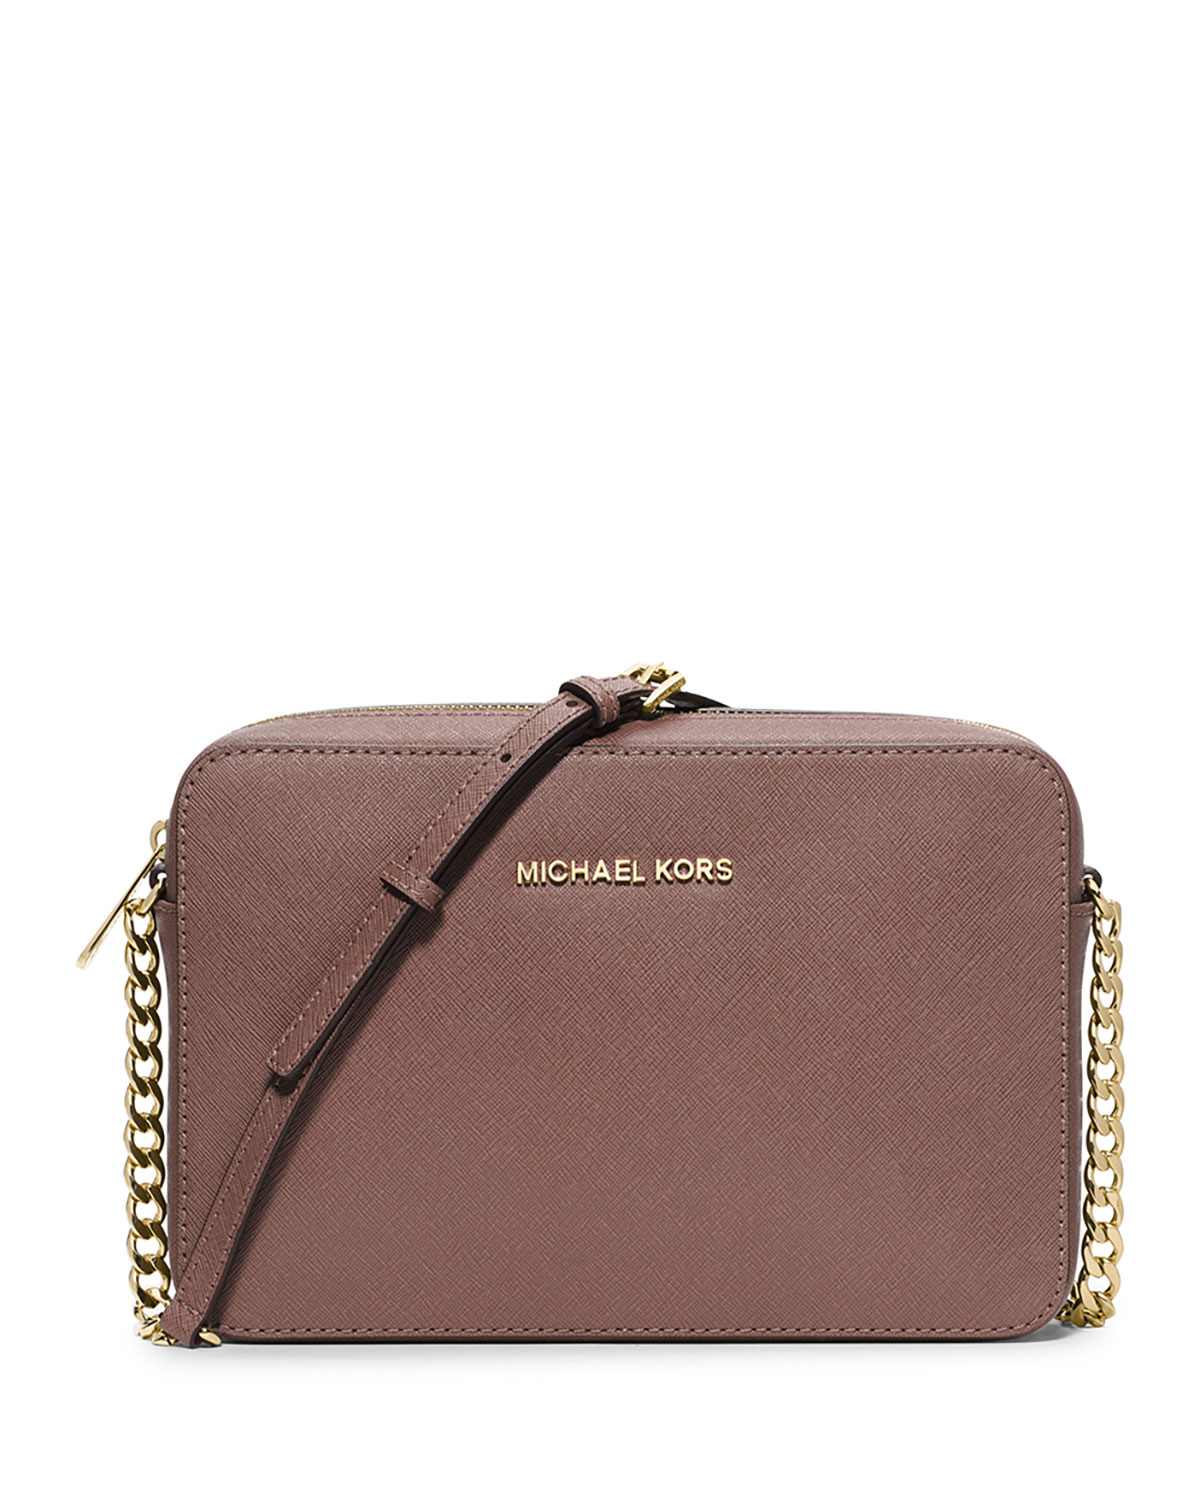 46bc3ca9f083 MICHAEL Michael Kors Jet Set Travel Large Crossbody Bag, Dusty Rose ...